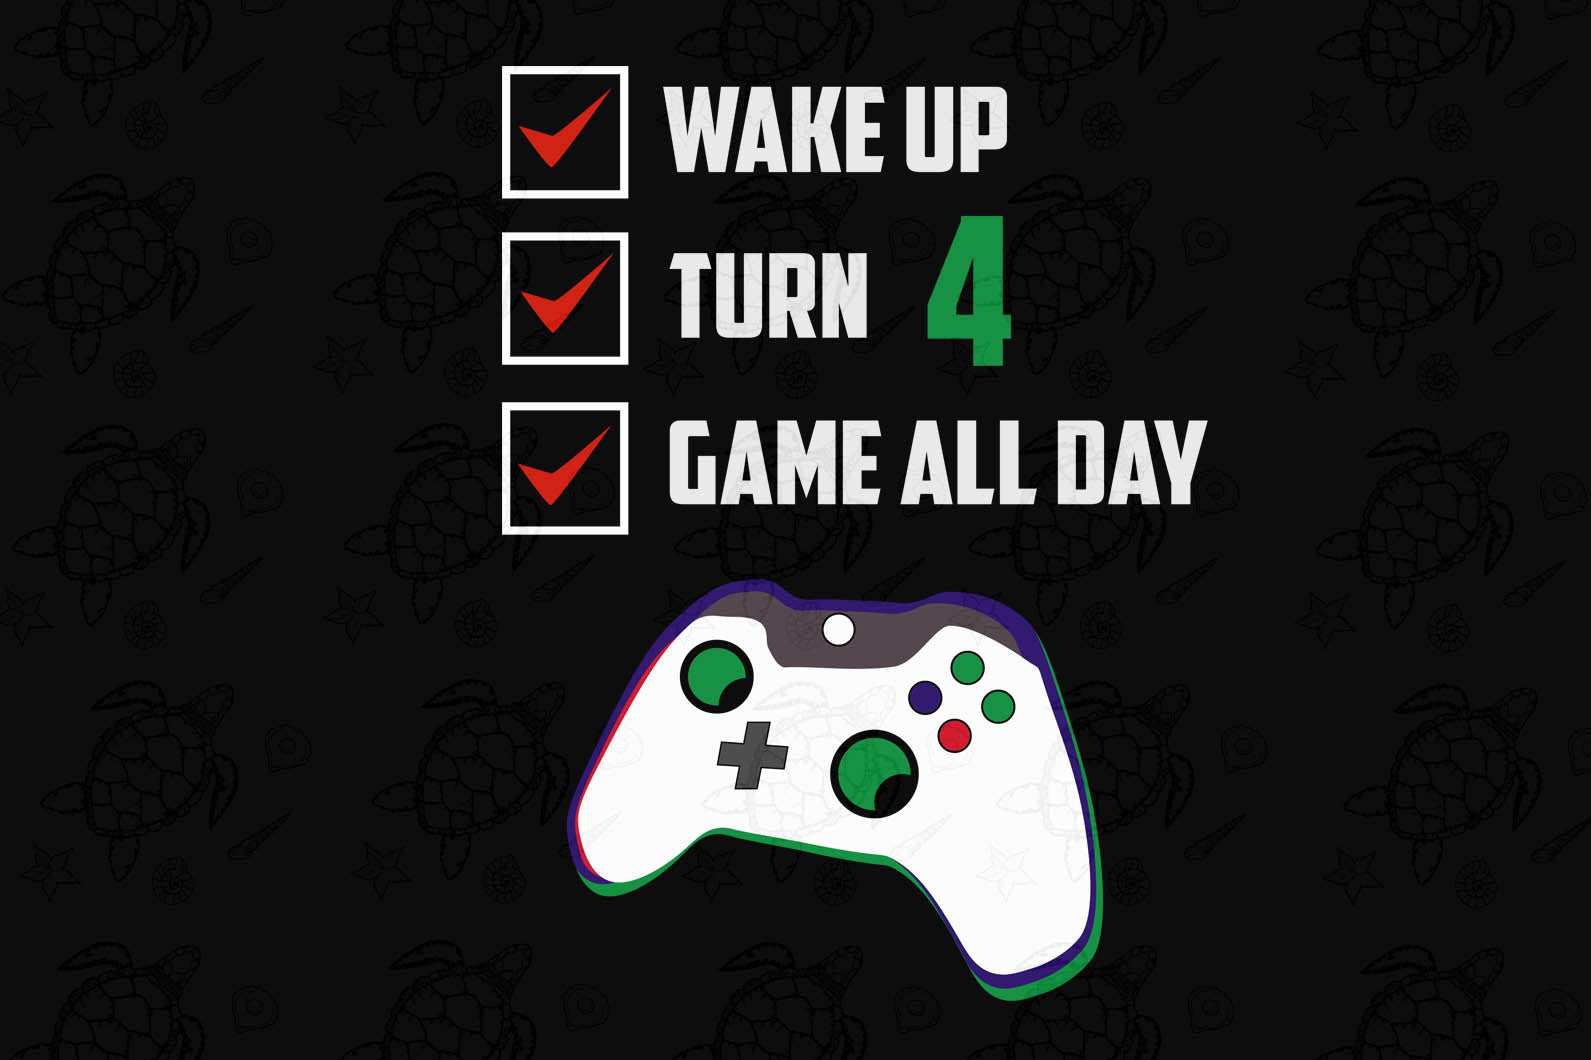 Wake up turn 4 game all day, born in 2016, 2015 svg, 4th birthday svg, 4th birthday party, 4th birthday gift, birthday shirt, birthday anniversary, gift for kids, gift from parents, game controller print, digital file, vinyl for cricut,